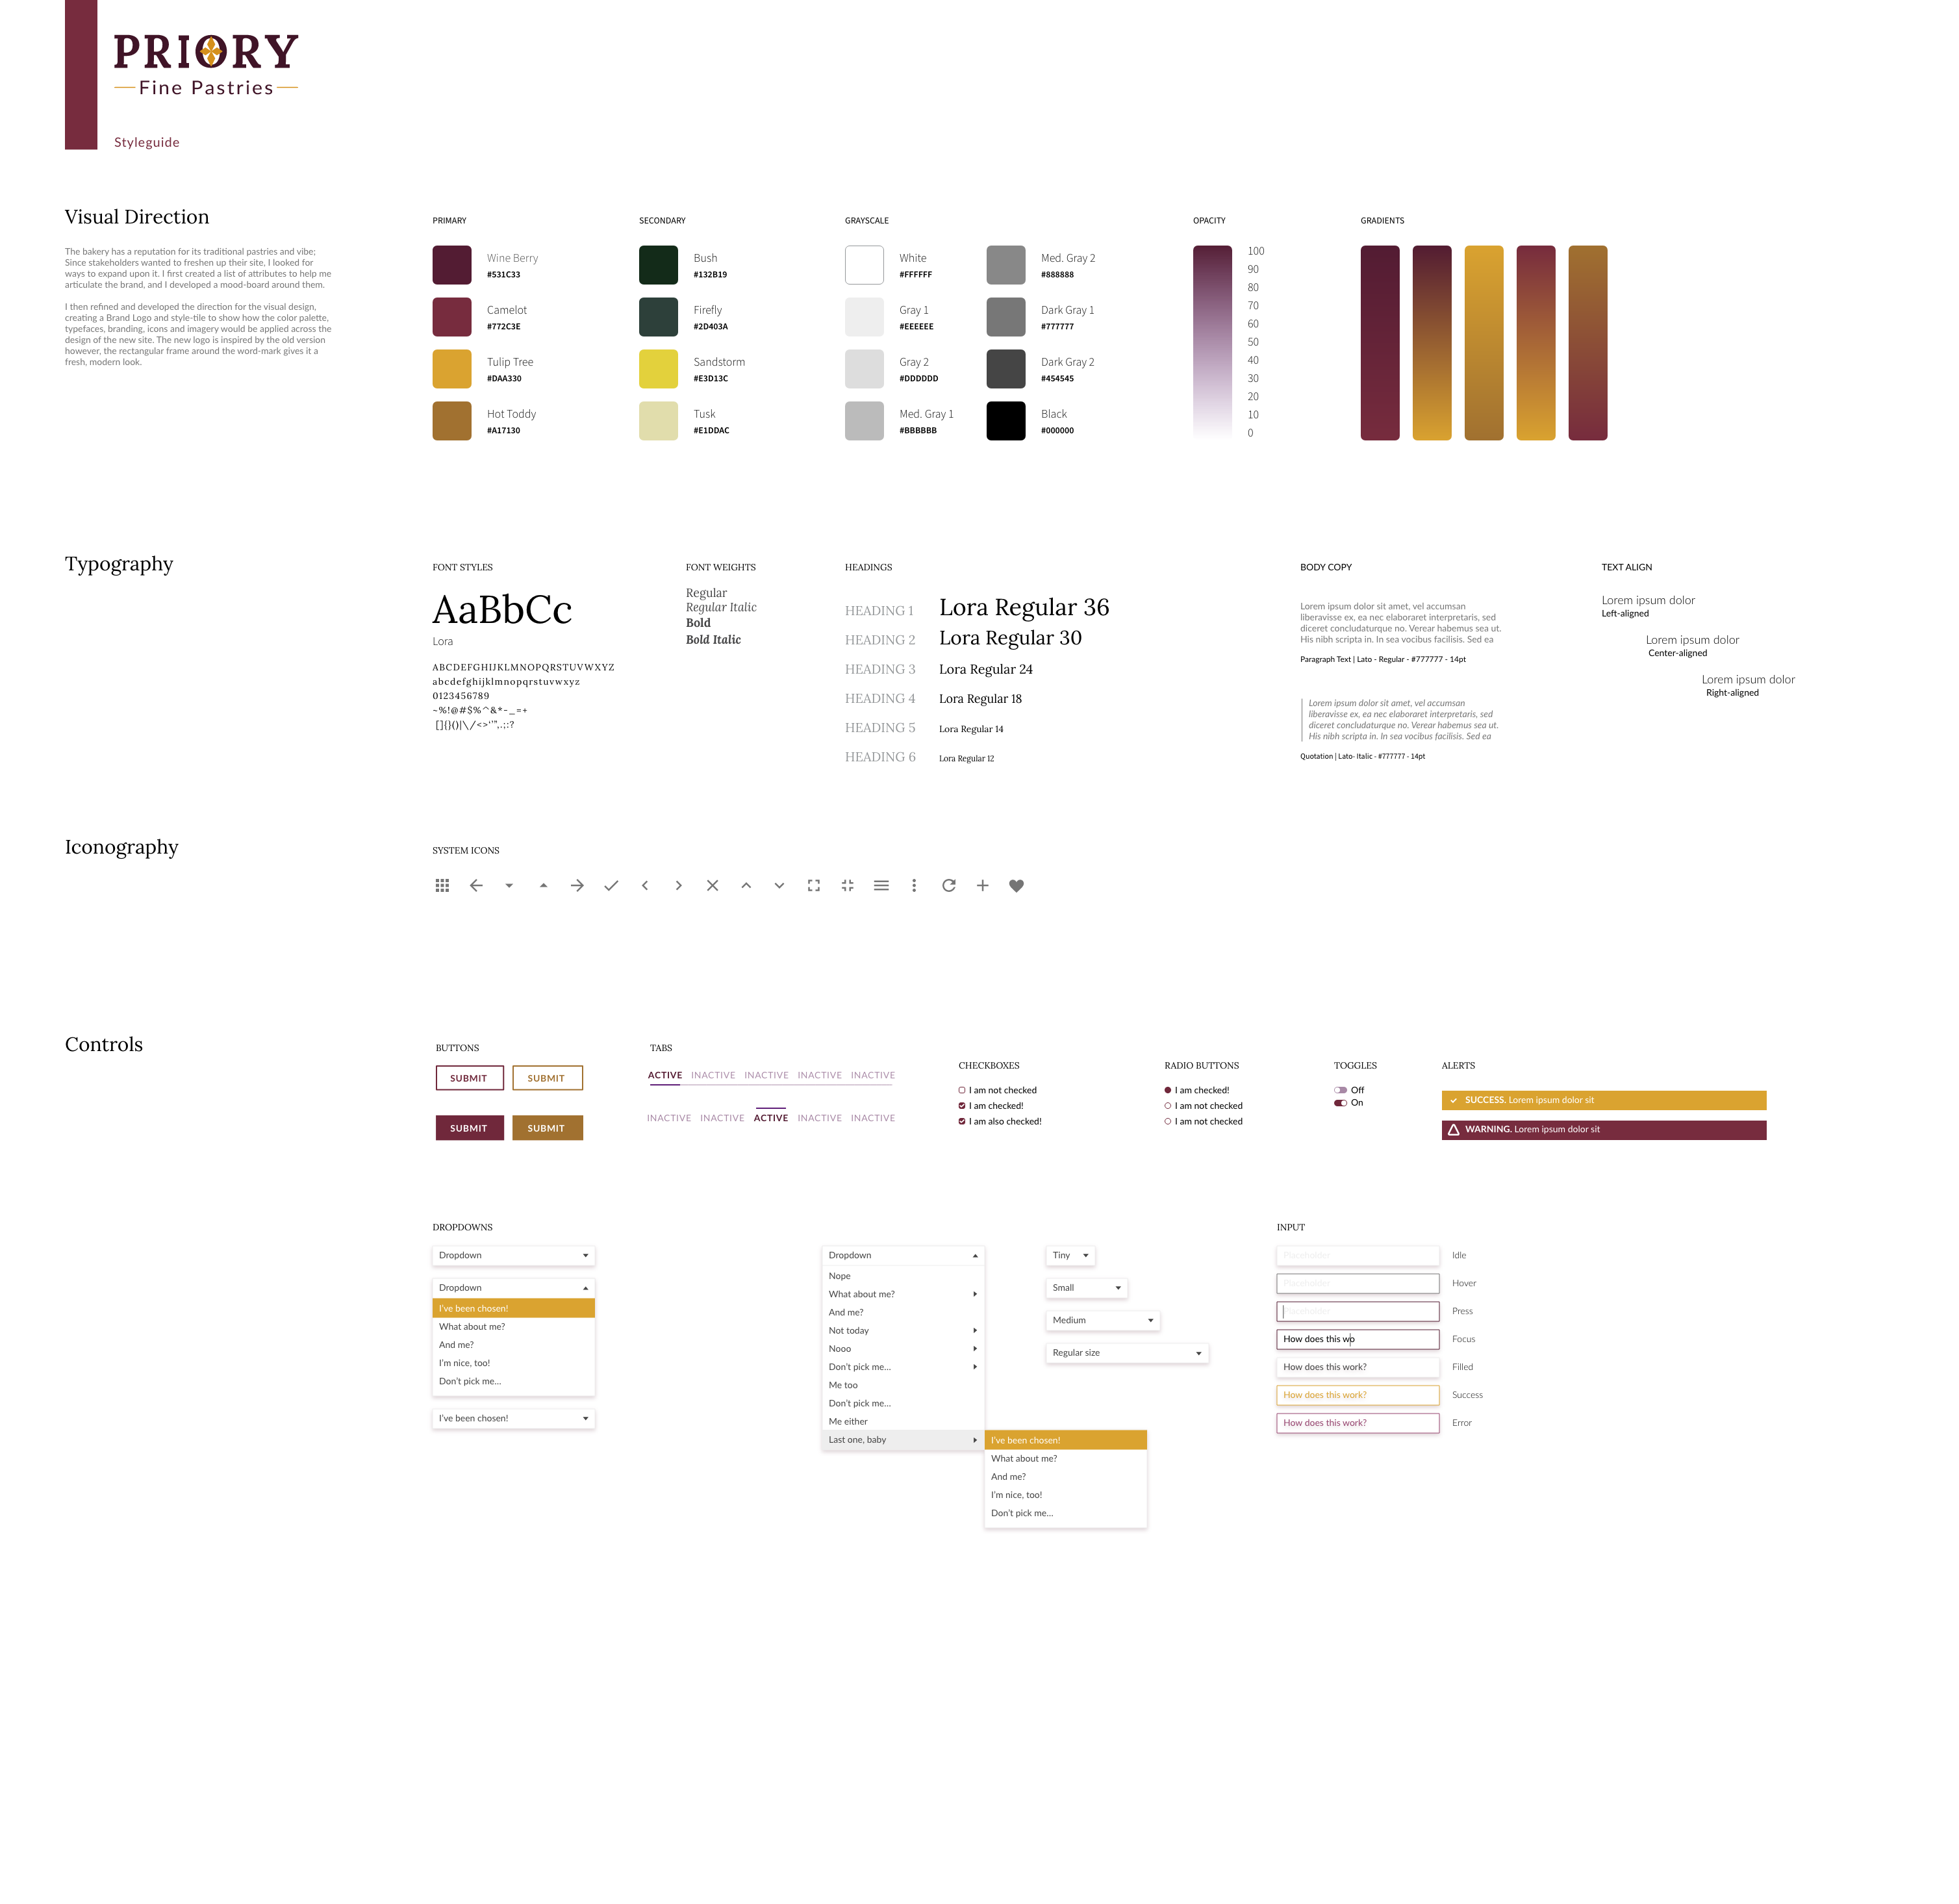 styleguide for priory fine pastries